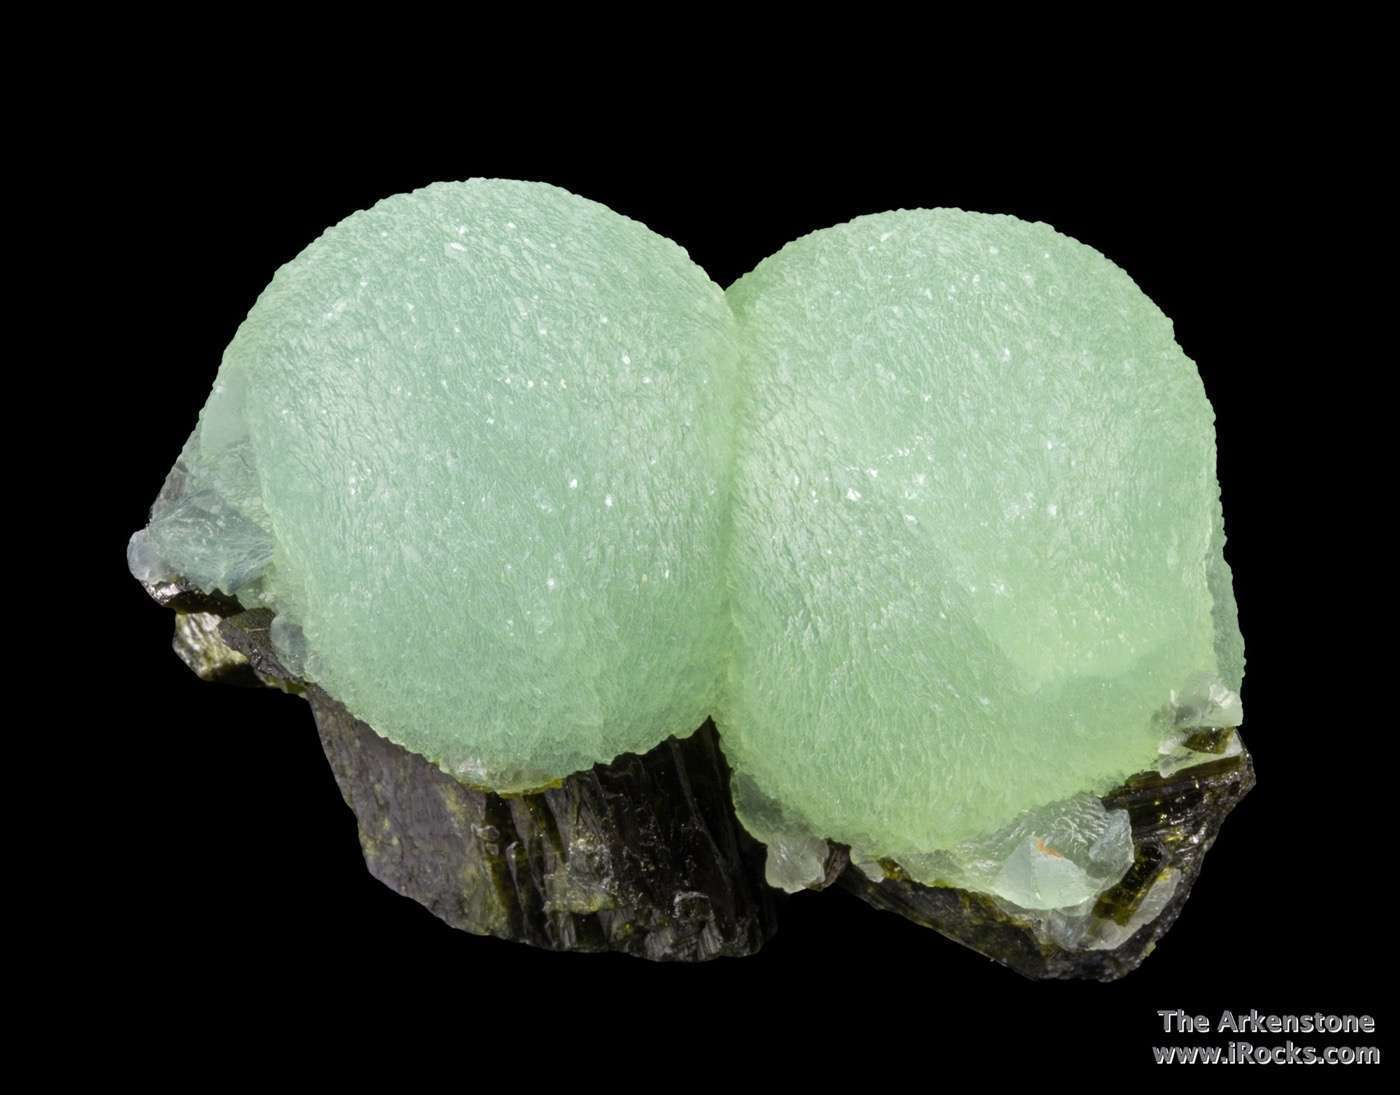 This piece composed lustrous translucent apple green spheres prehnite